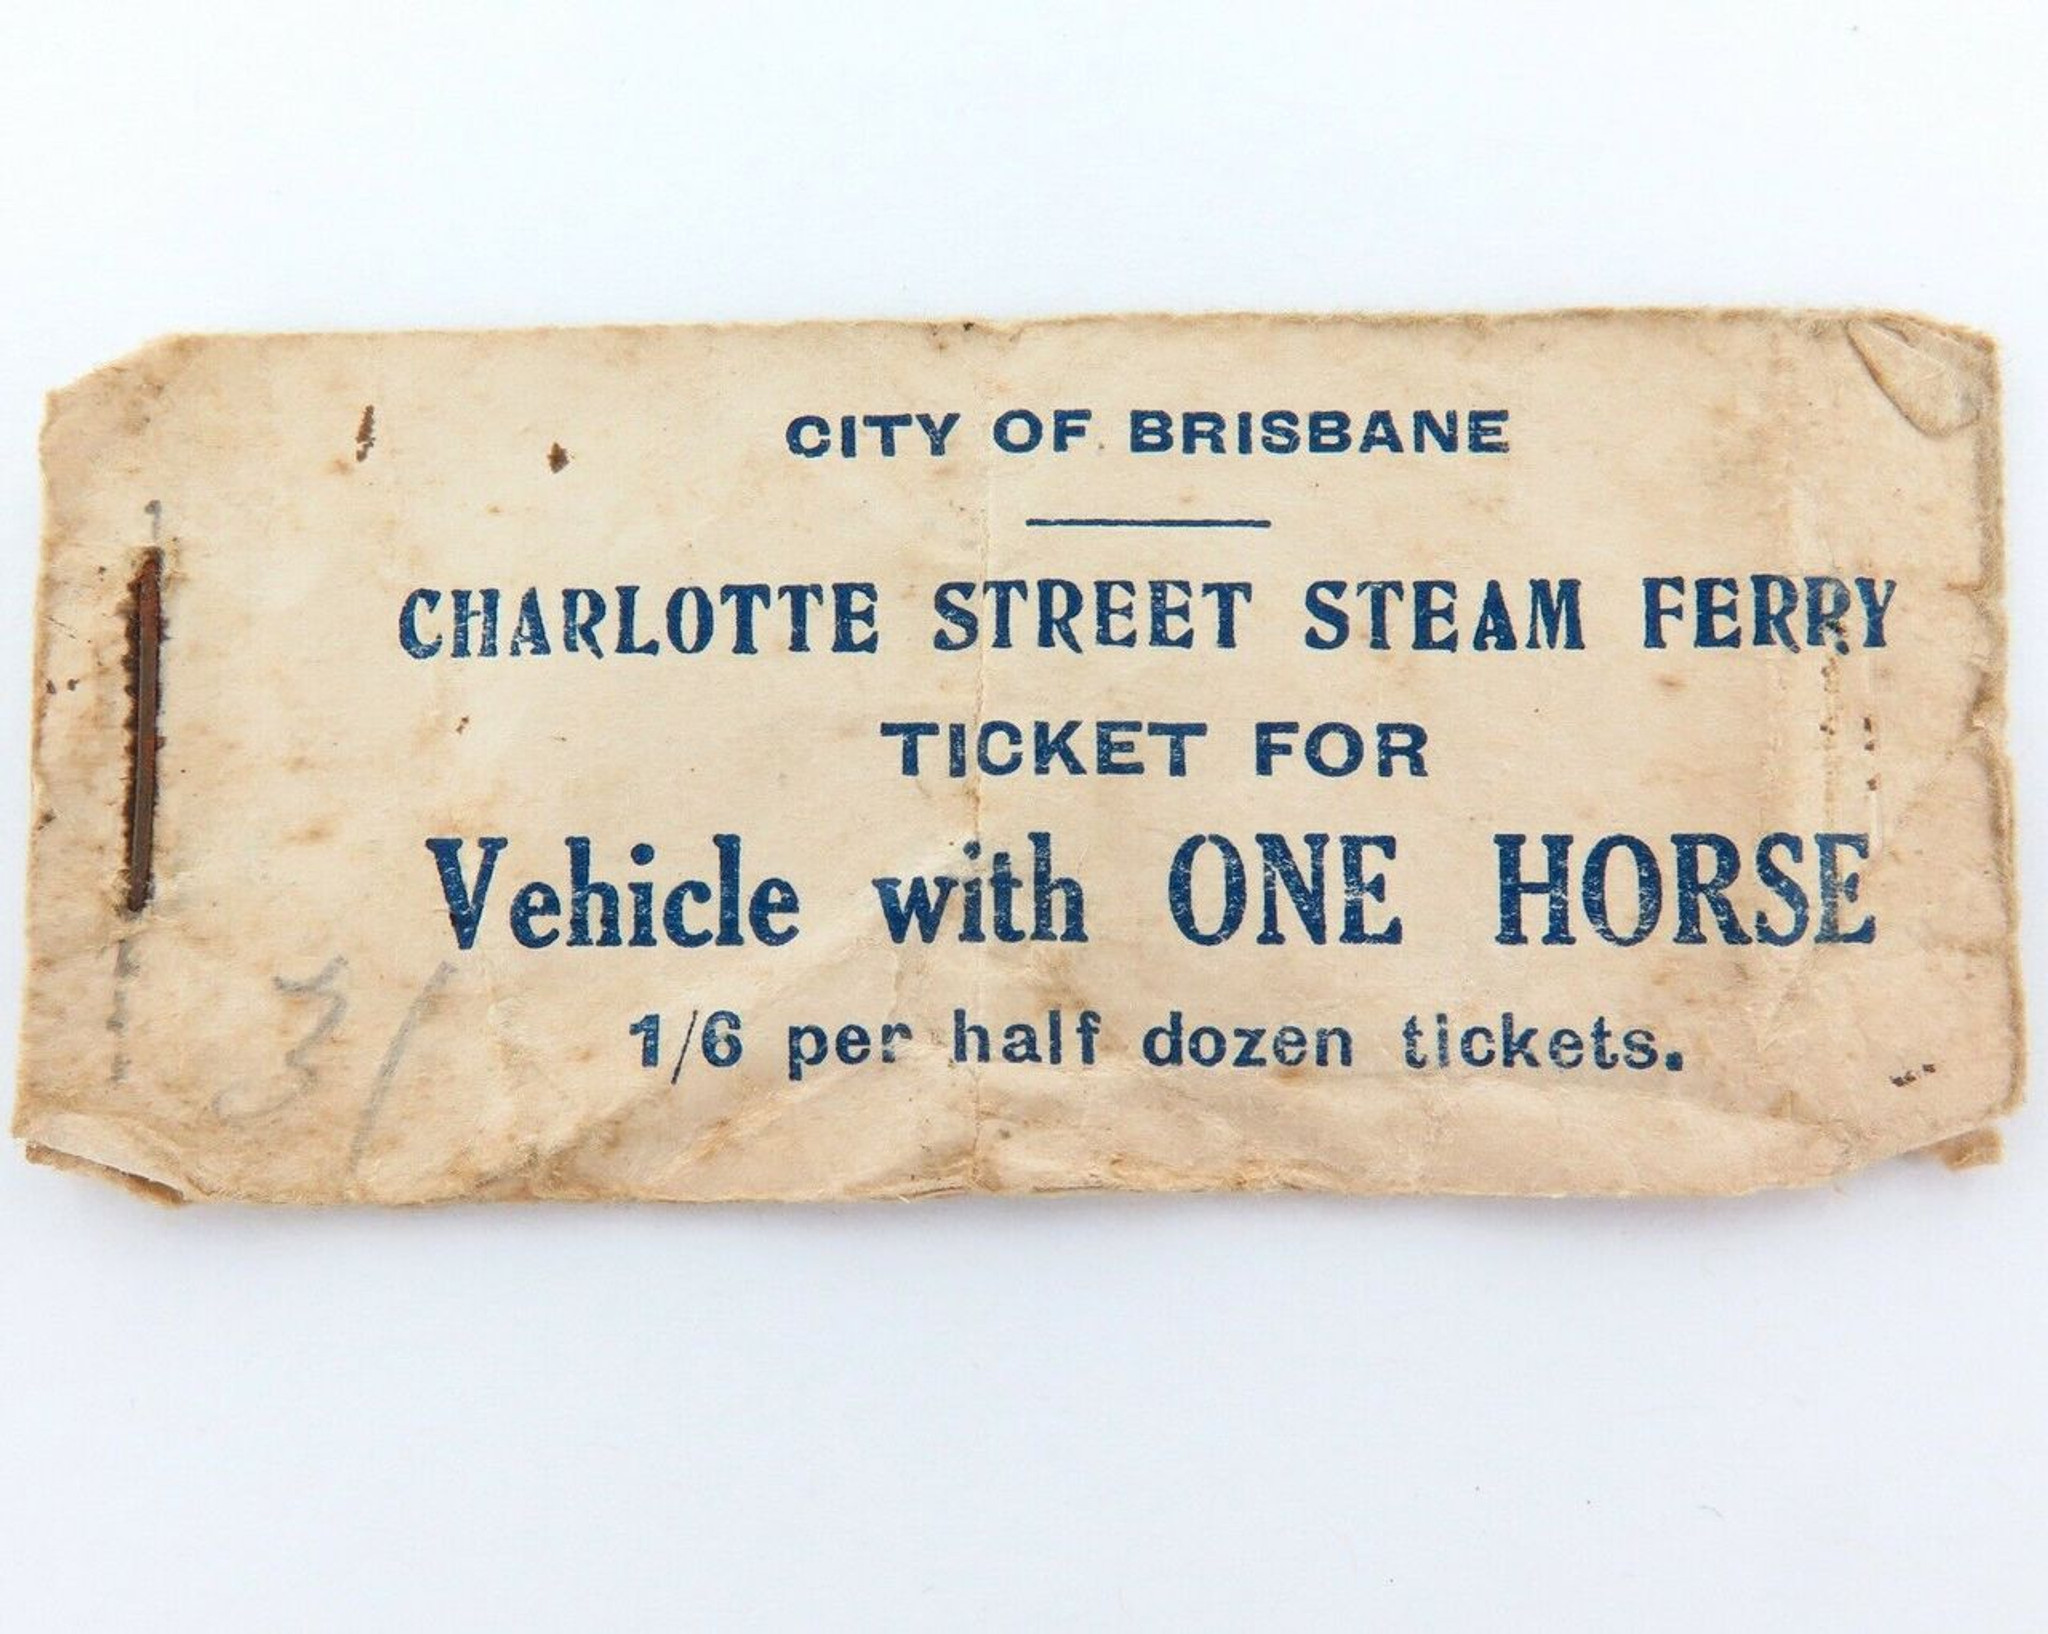 SUPER RARE 1800s STEAM FERRY TICKETS BRISBANE, CHARLOTTE ST  VEHICLE + ONE  HORSE